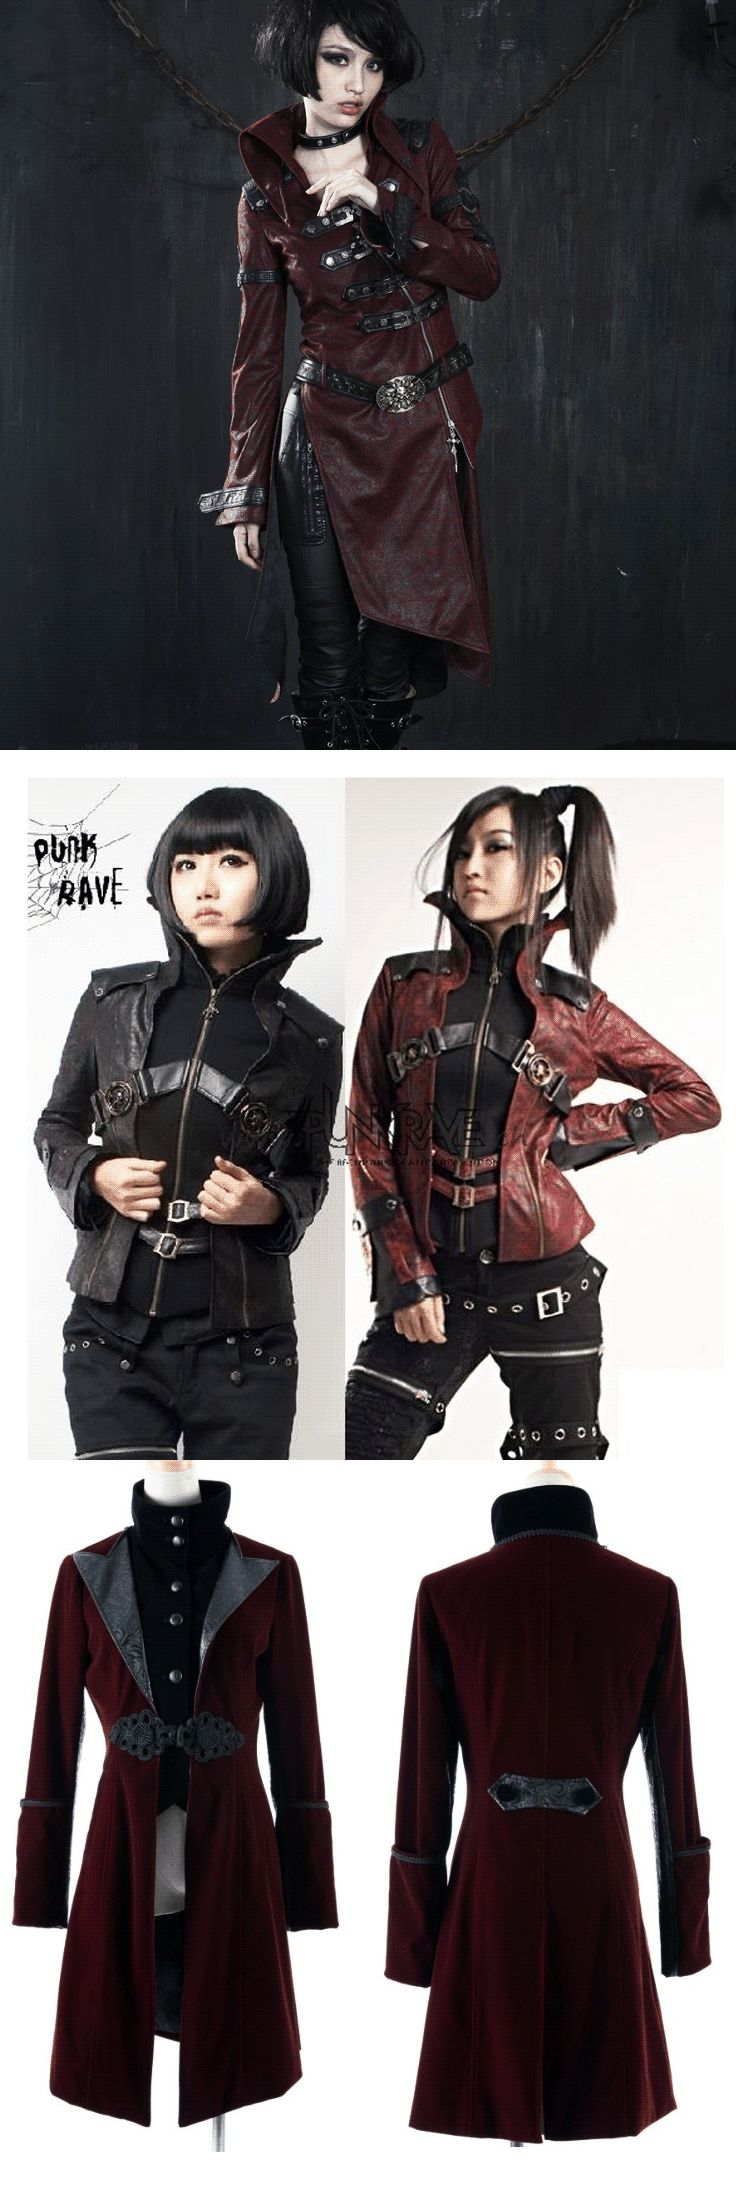 Shop goth steampunk coats and jackets at RebelsMarket.